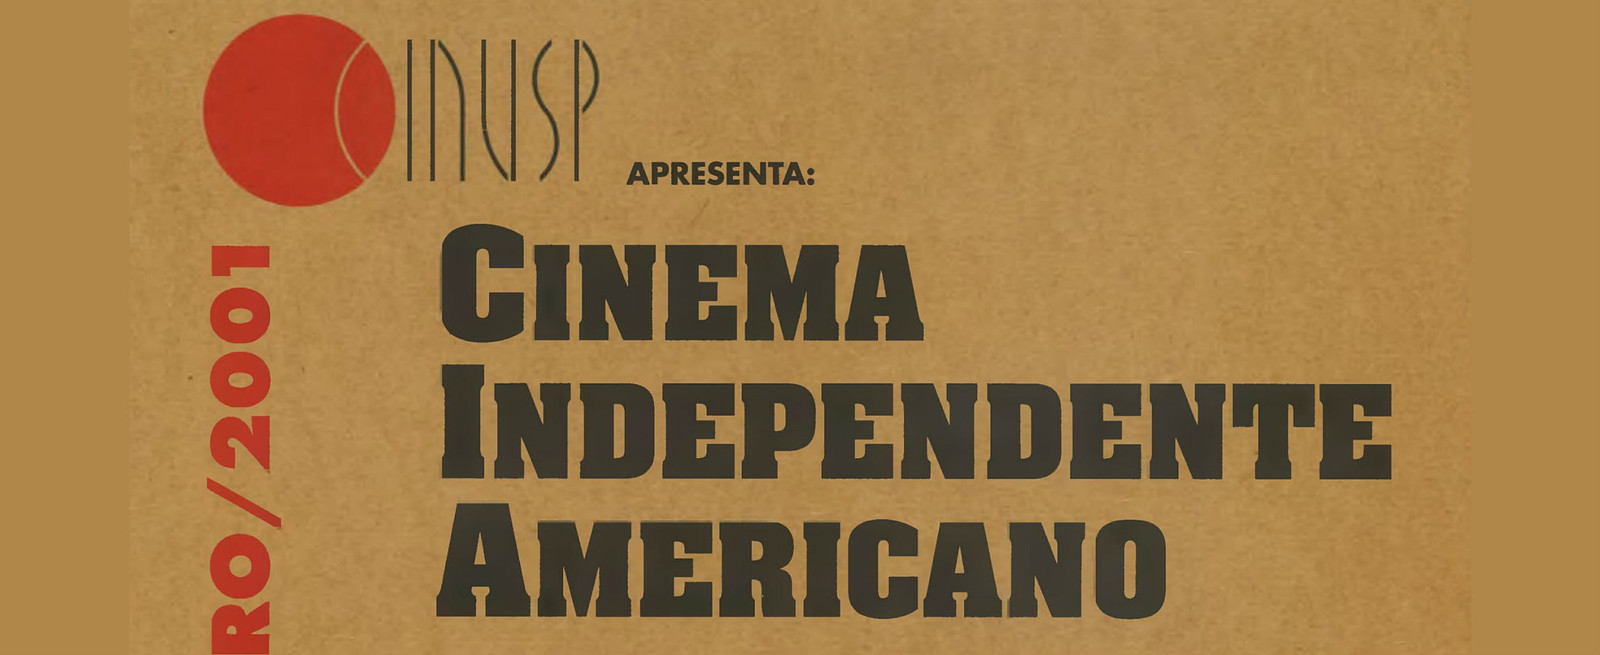 Cinema Independente Americano